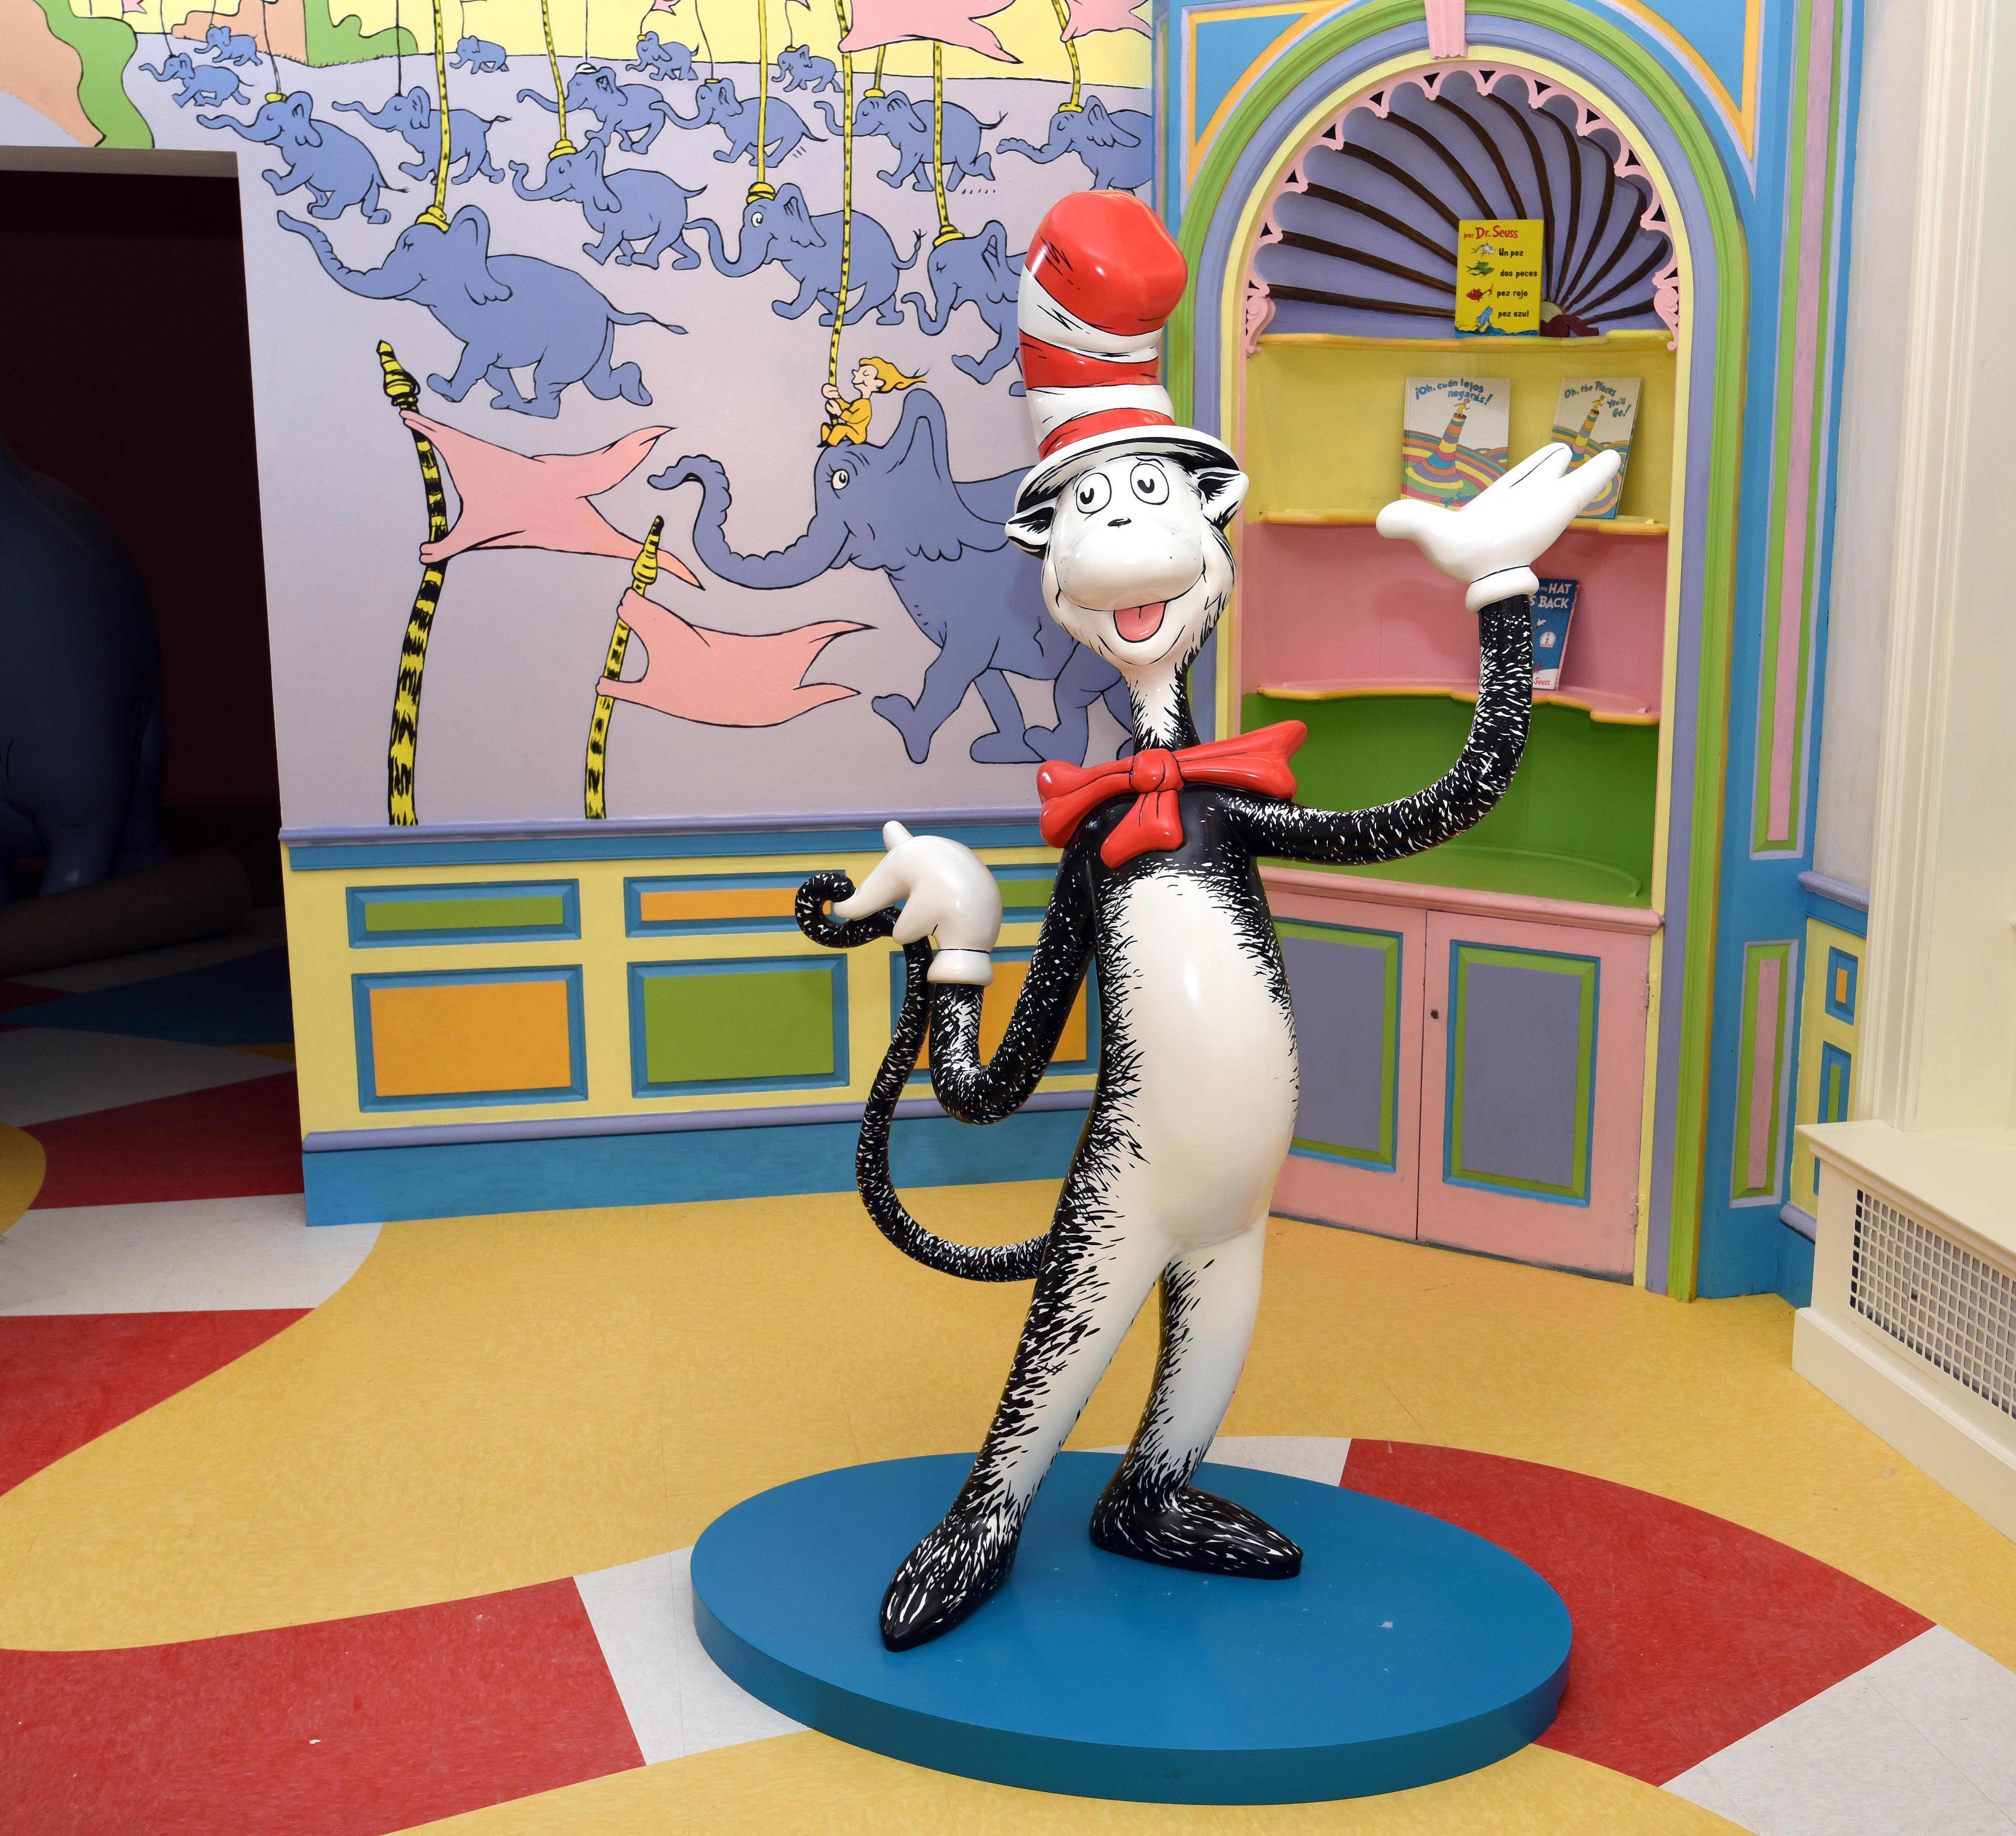 The Cat in the Hat statue inside of the Museum.